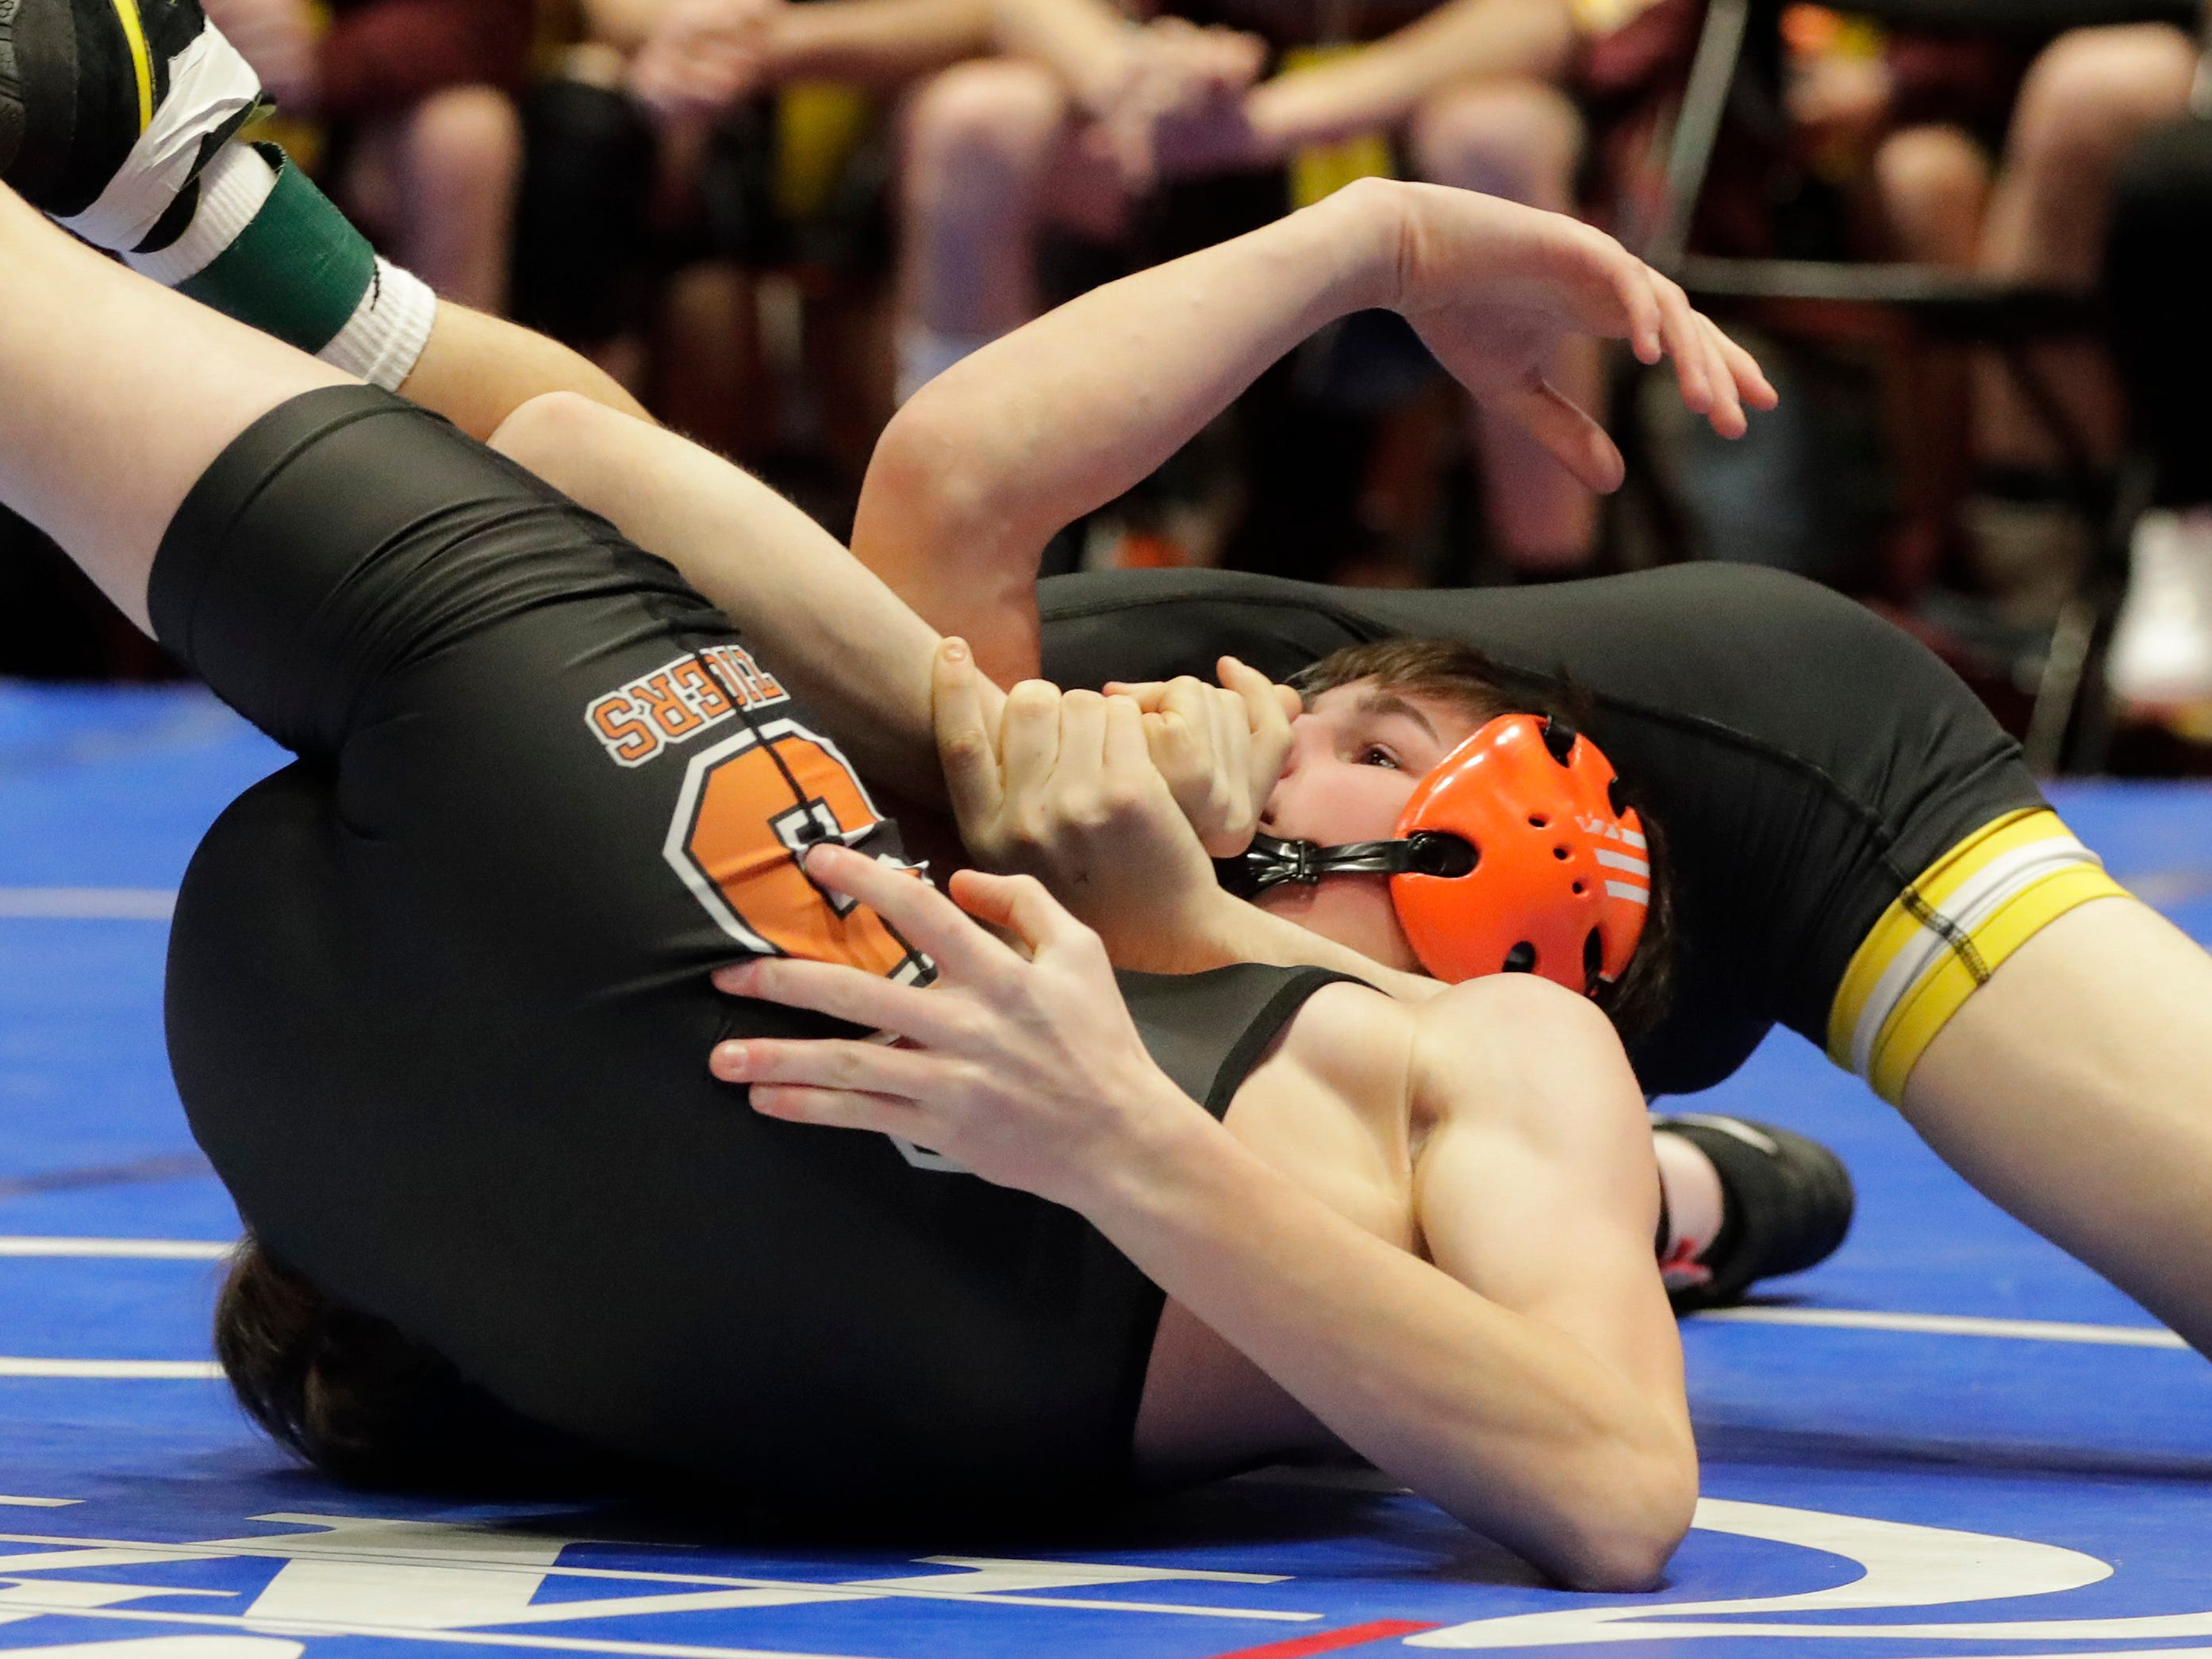 Stratford's Dillon Kirsch, bottom, is wrapped up by Fennimore's Alex Birchman in the 126-pound class, Saturday, March 2, 2019, in Madison, Wis.